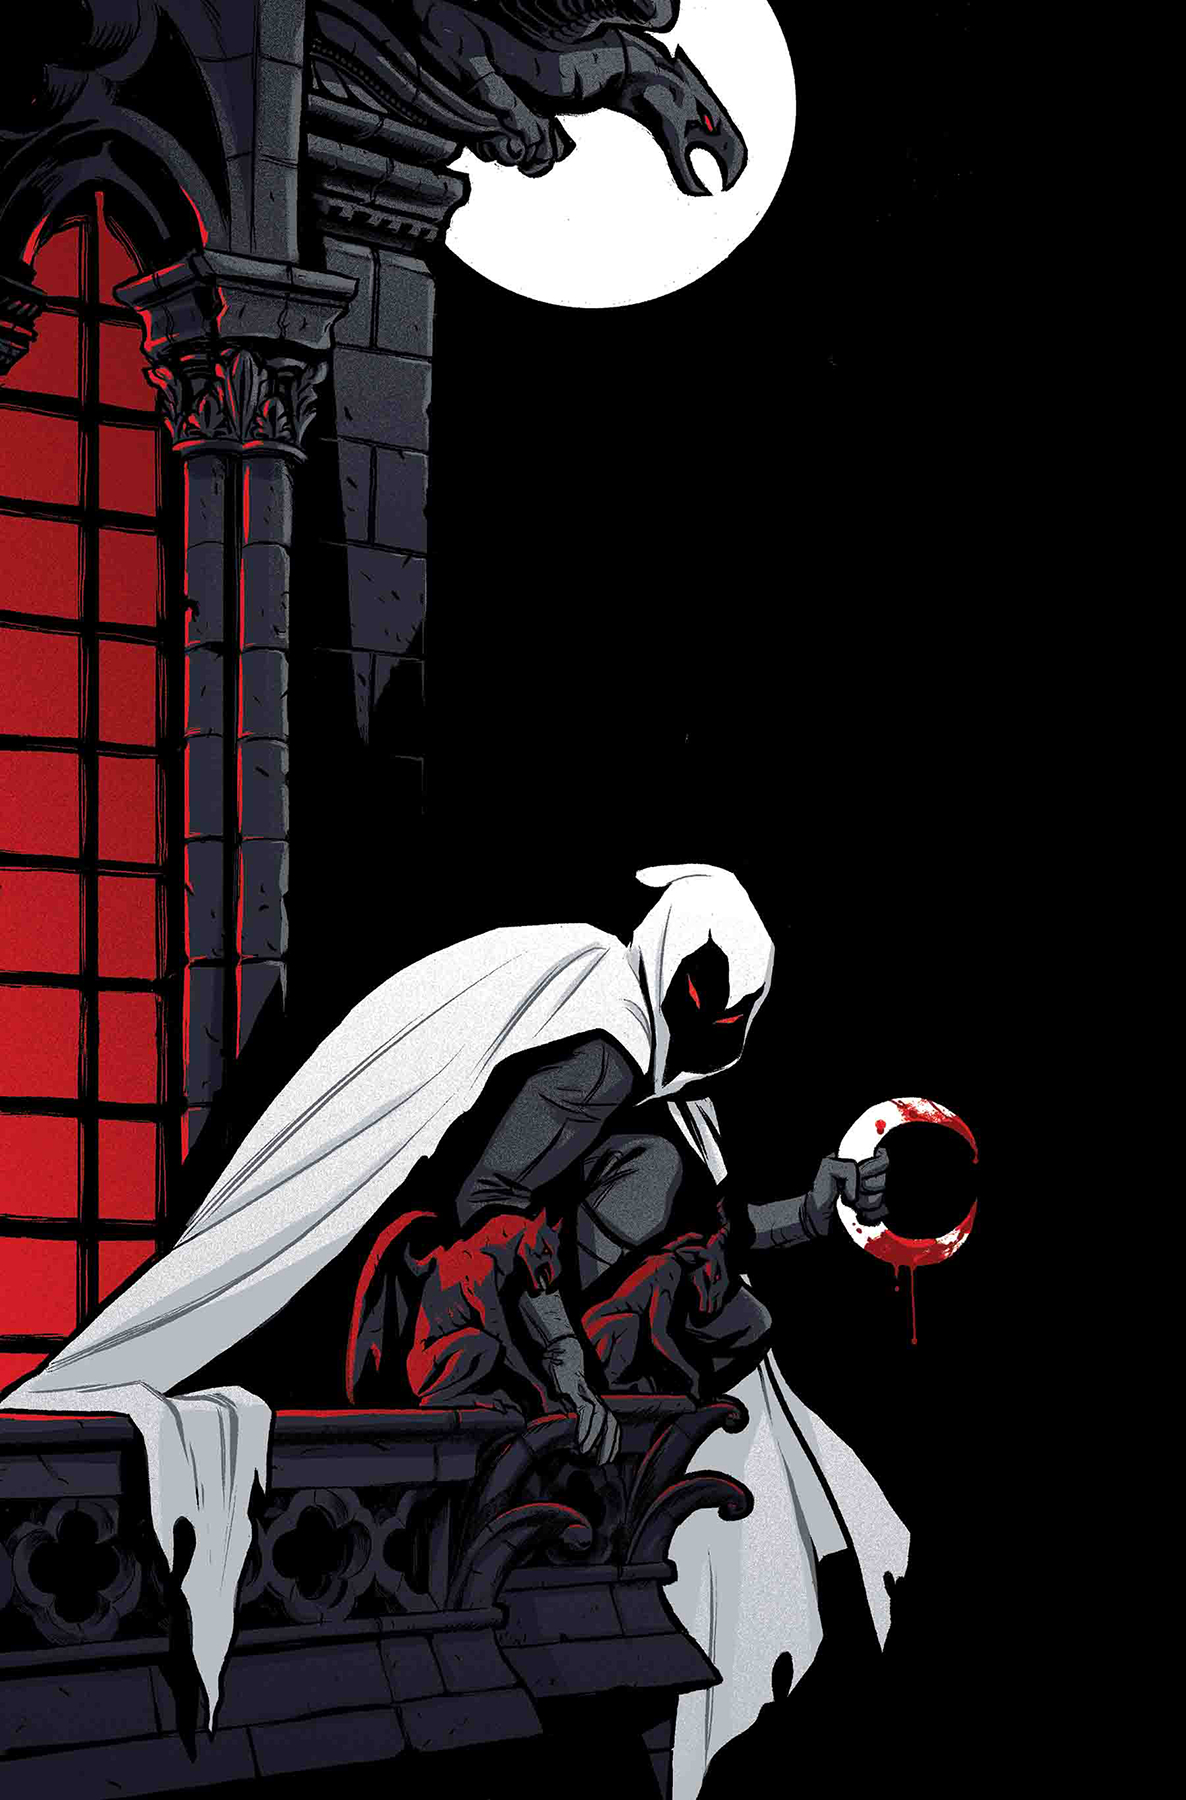 moon knight - photo #23